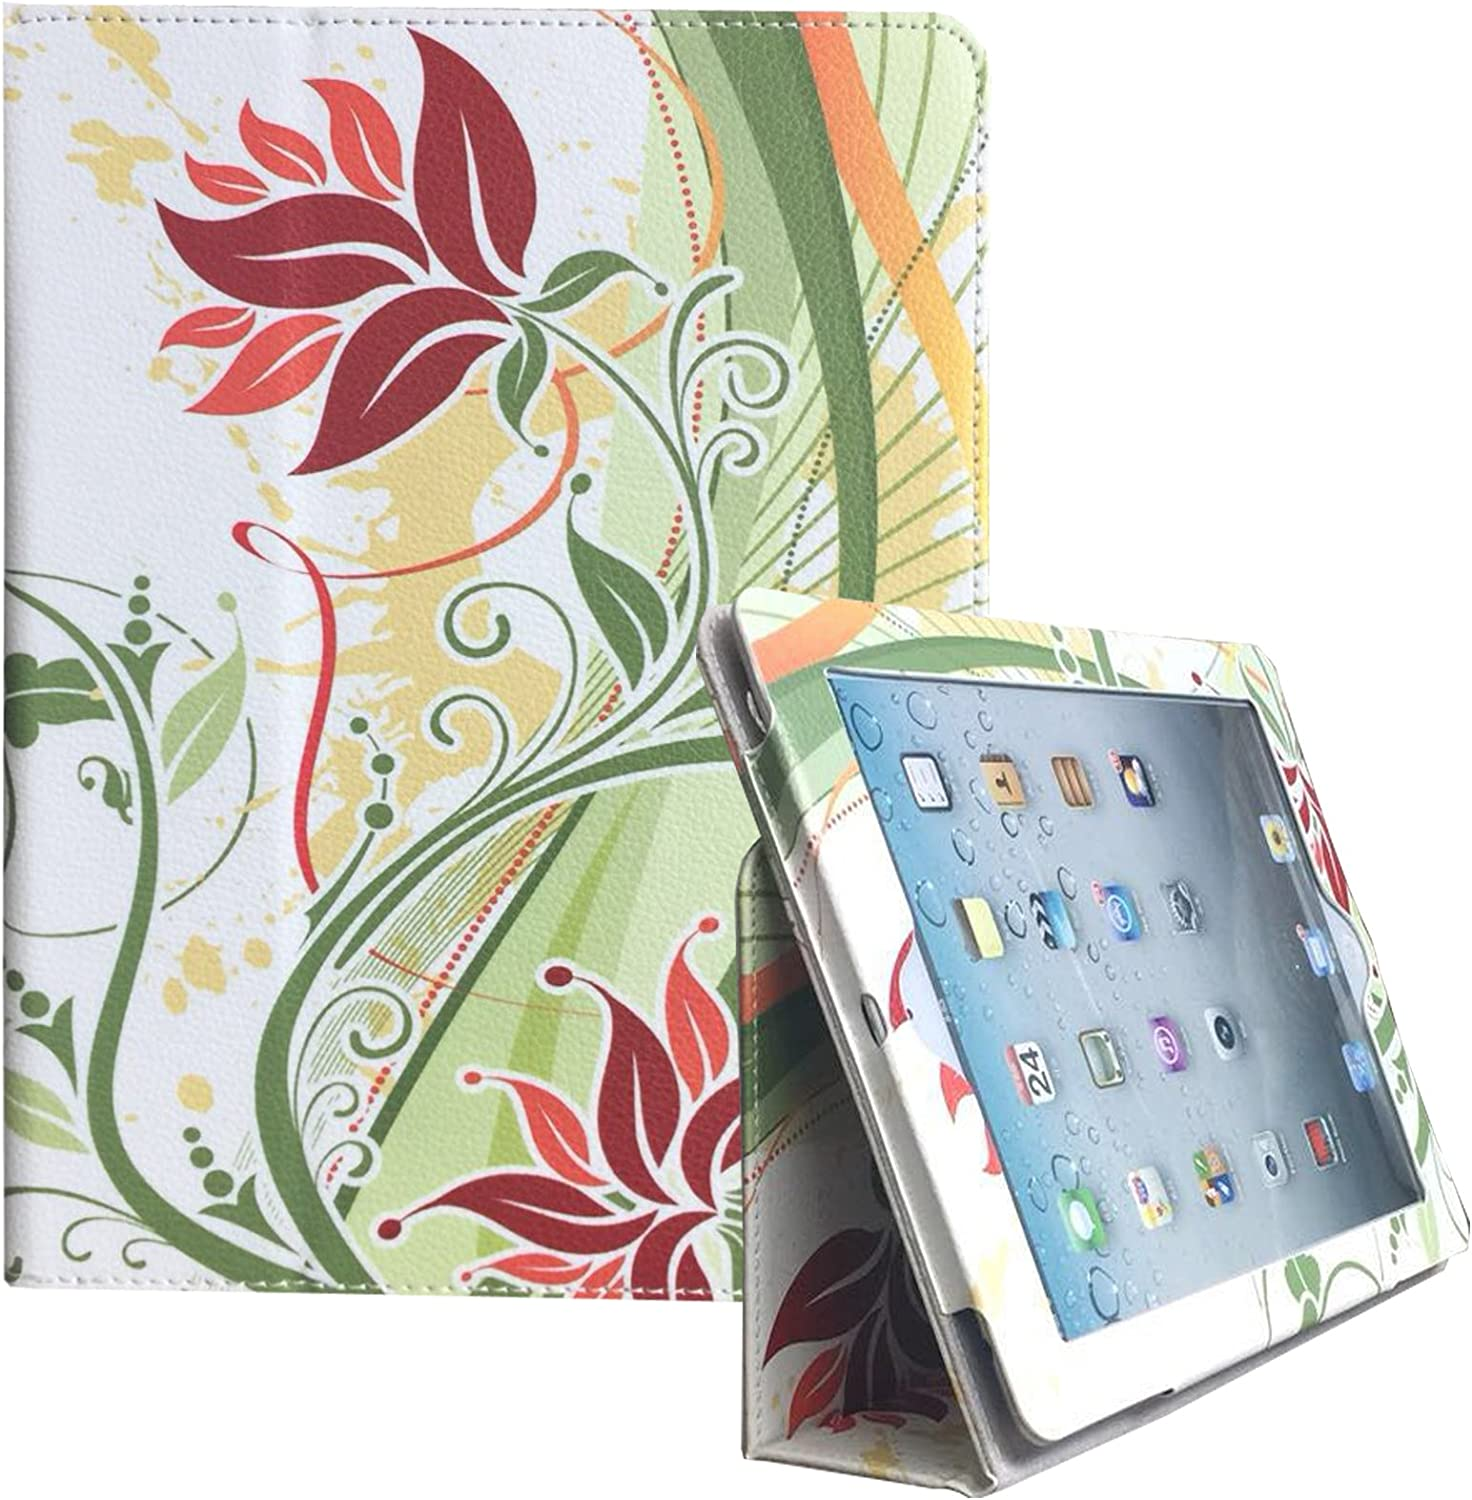 JYtrend 2018/2017 New iPad 9.7 Case (R) Folio Stand Magnetic Smart Cover for Apple iPad 5th/6th Gen A1822 A1823 A1893 A1954 with Auto Wake/Sleep (Leaf Flower)